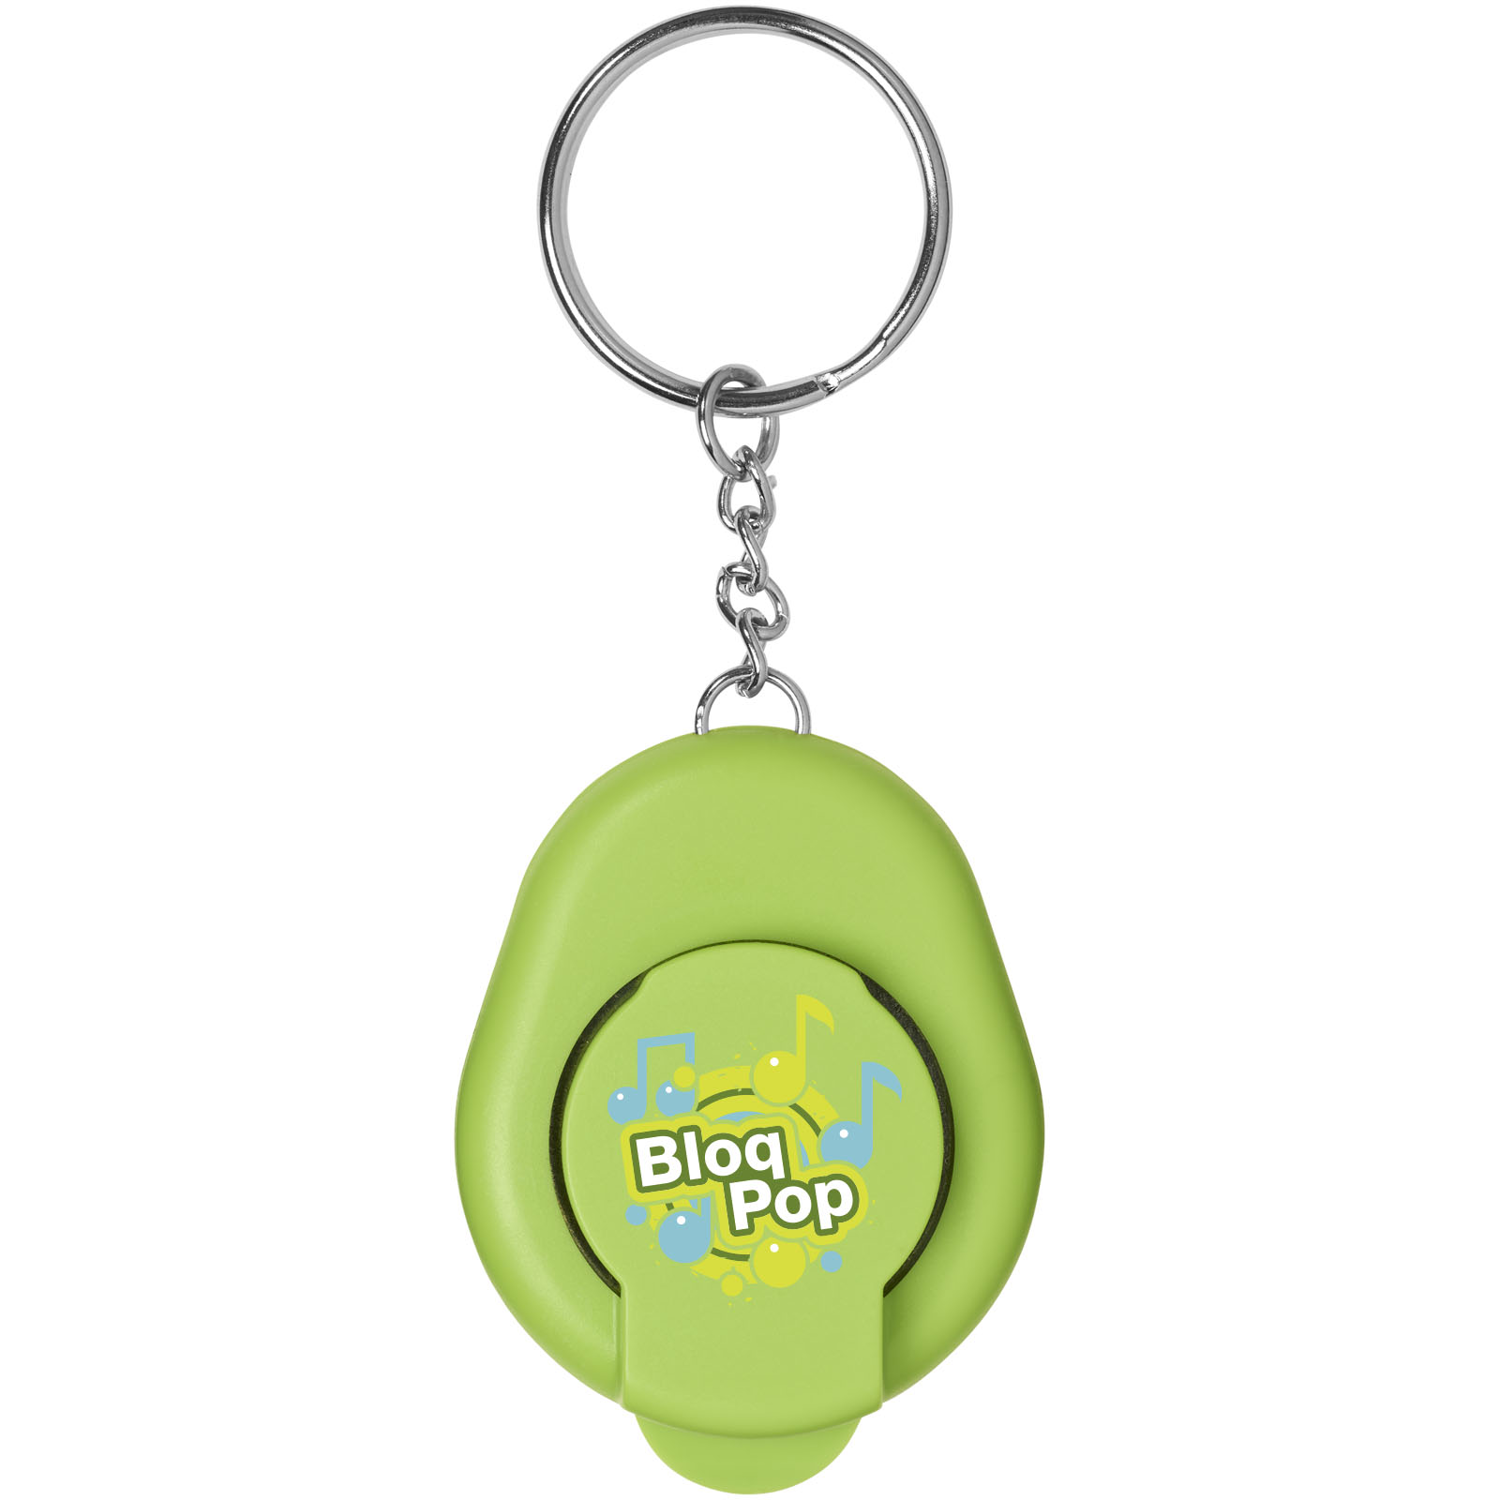 Cappi Bottle Opener Key Chain